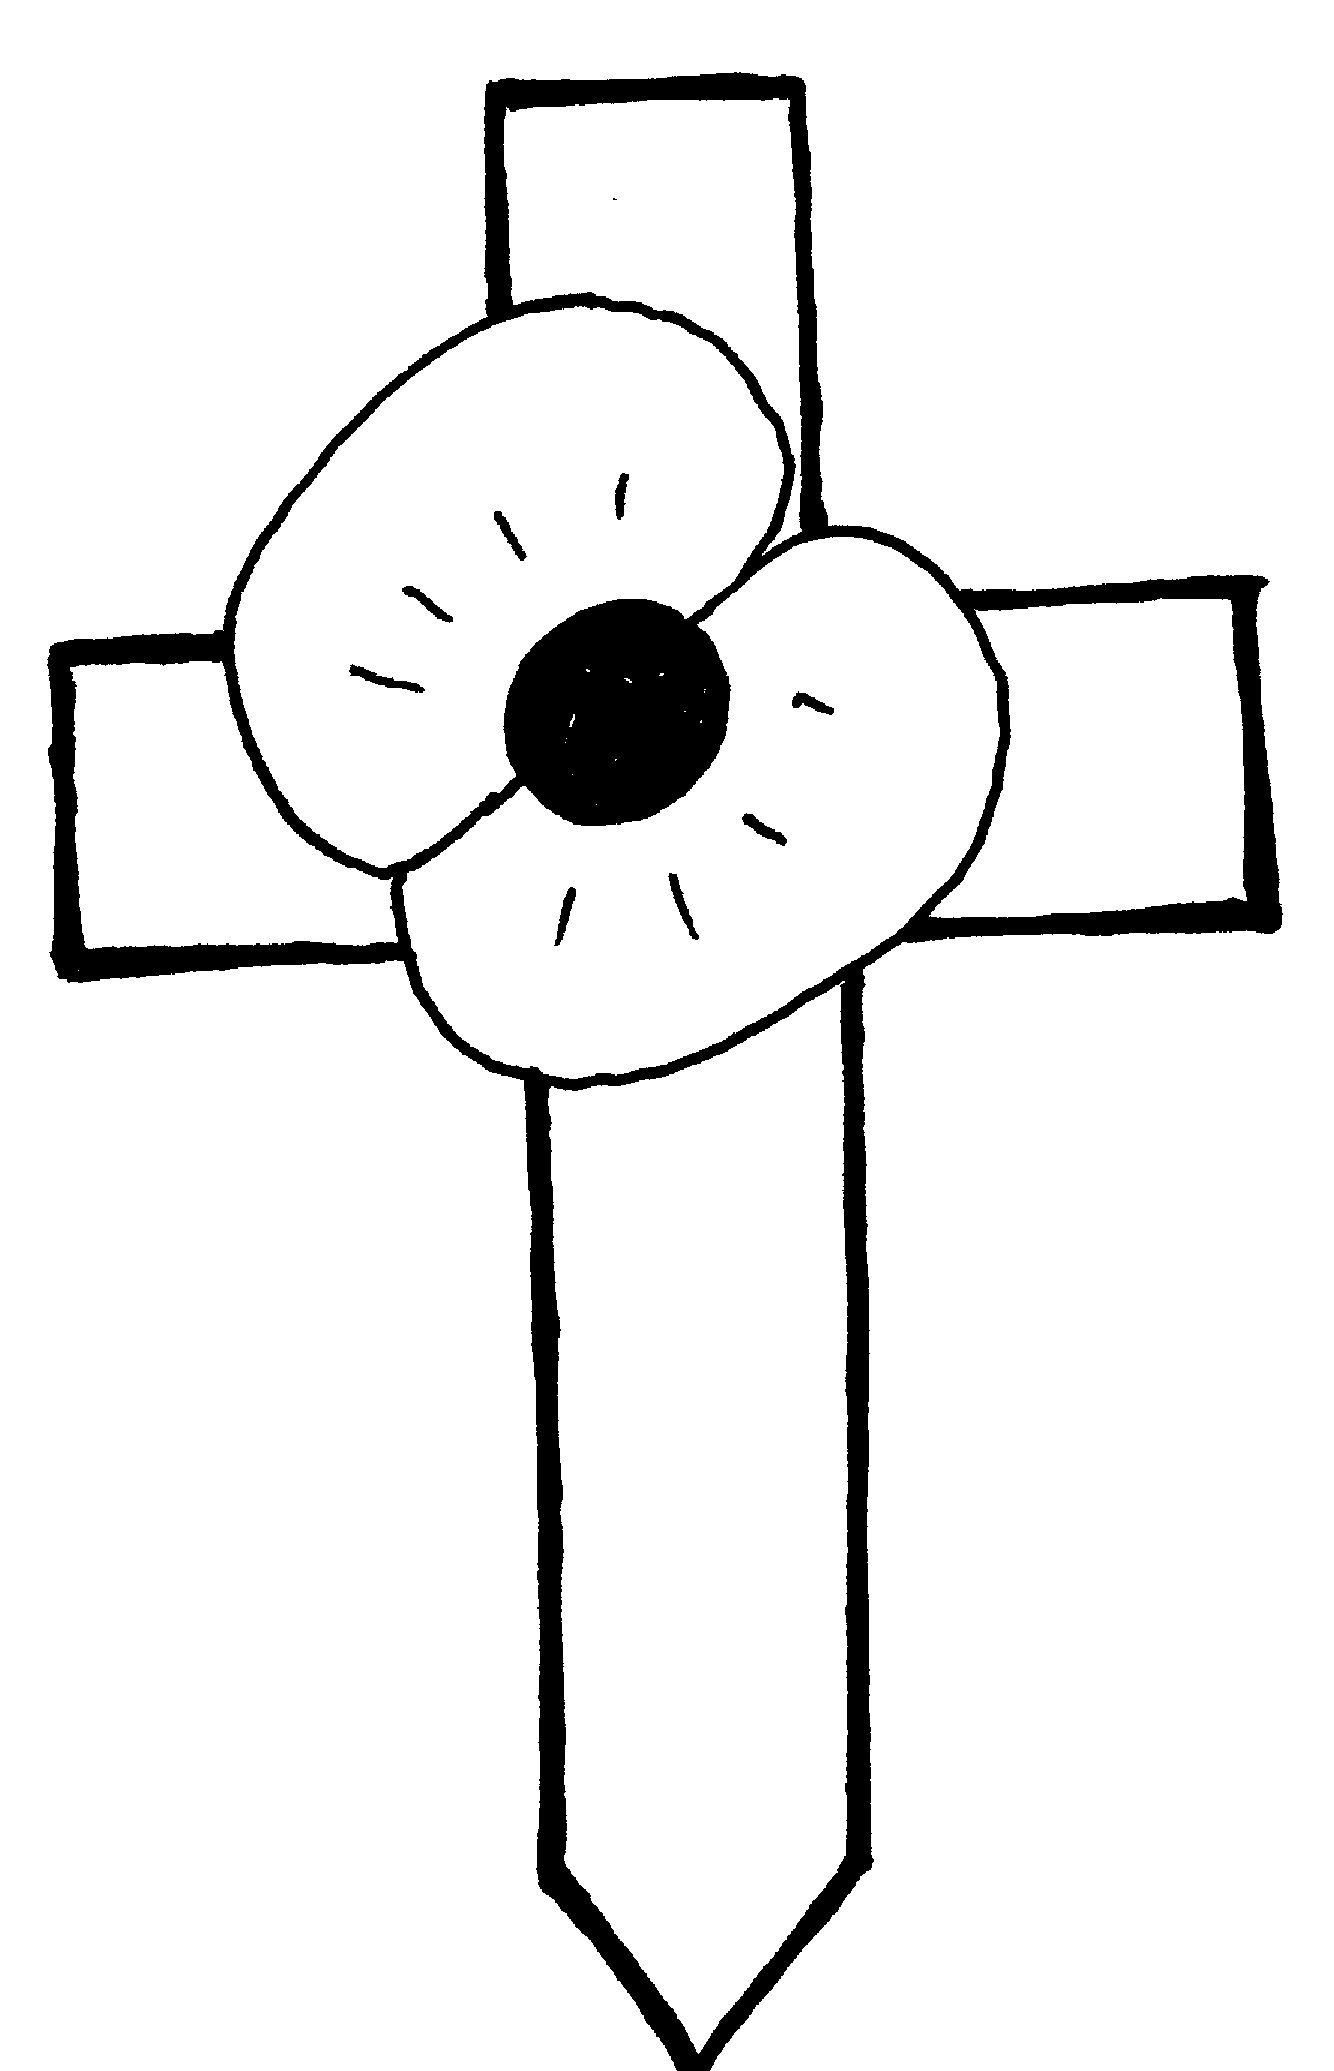 medium resolution of 37 awesome memorial day poppy clipart